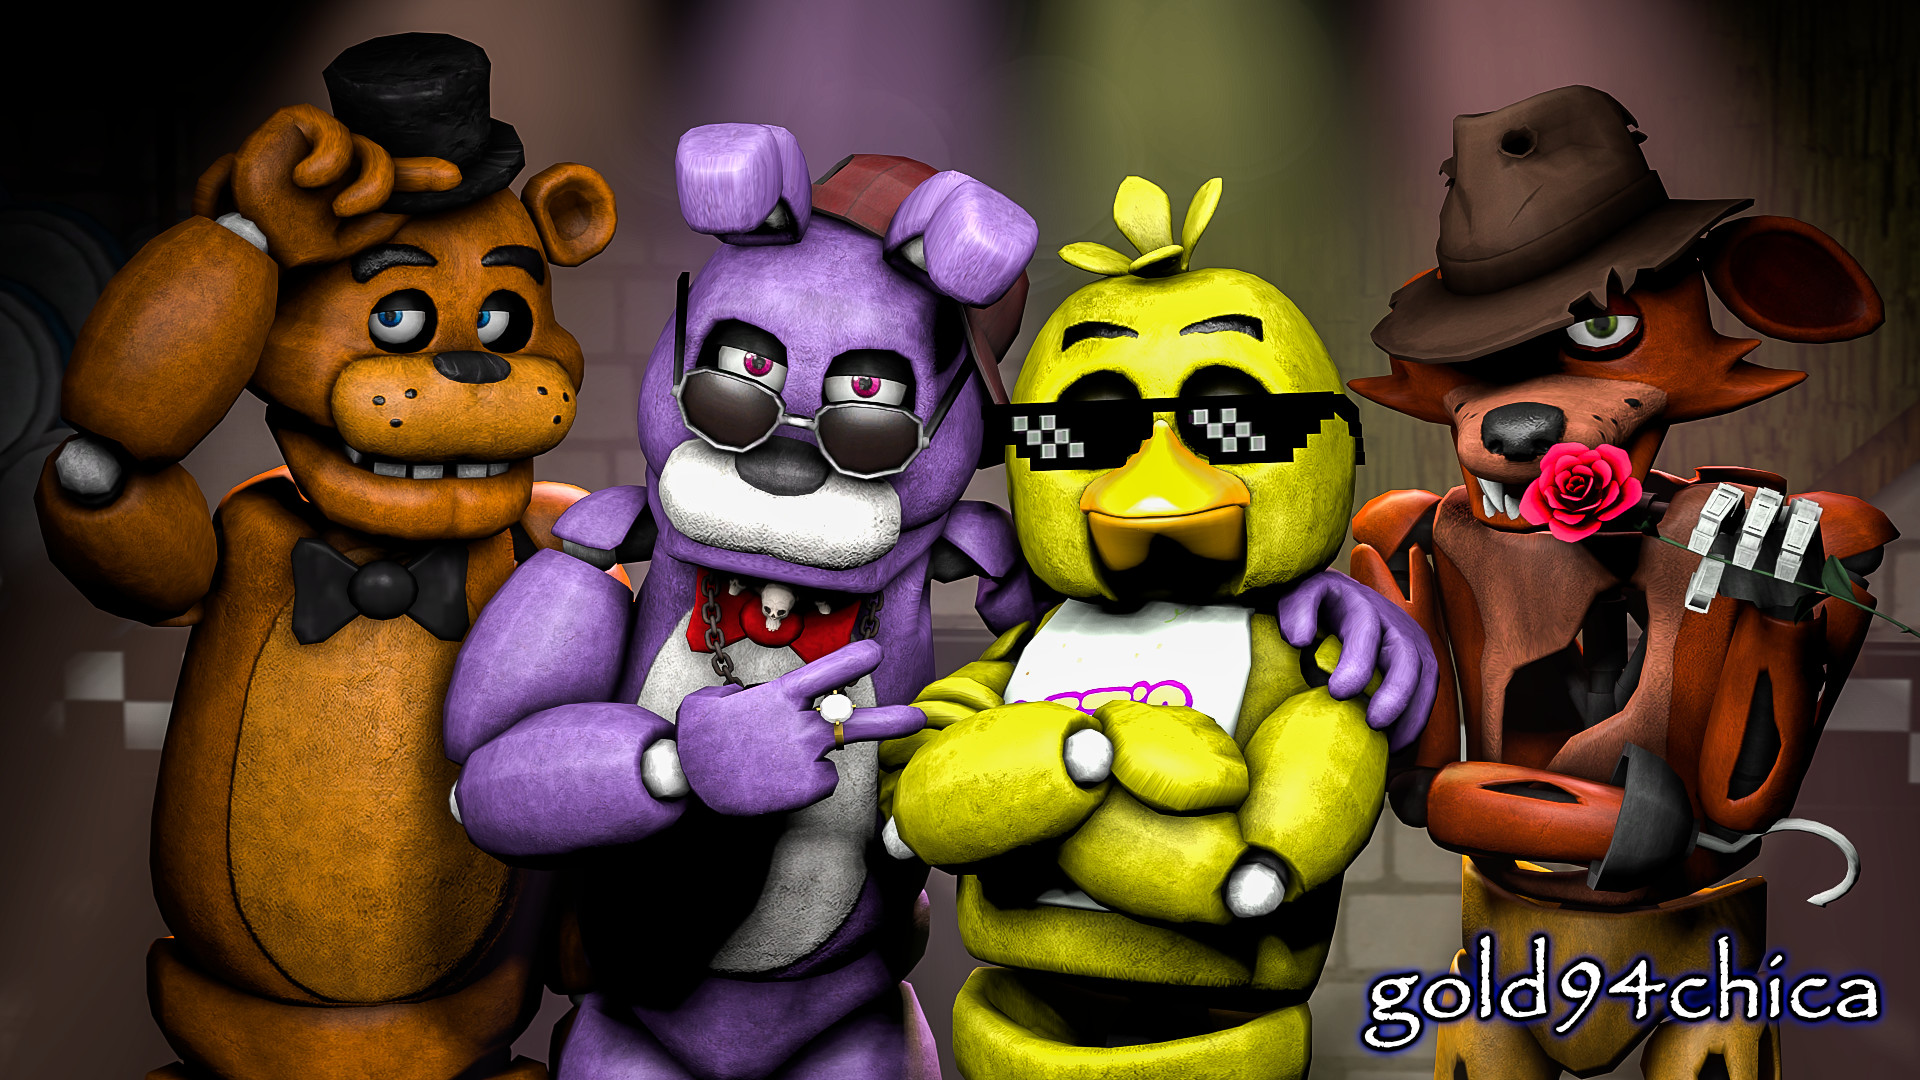 1920x1080 Epic Friends Forever (FNAF SFM Wallpaper), FNAF main animatronics wallpaper